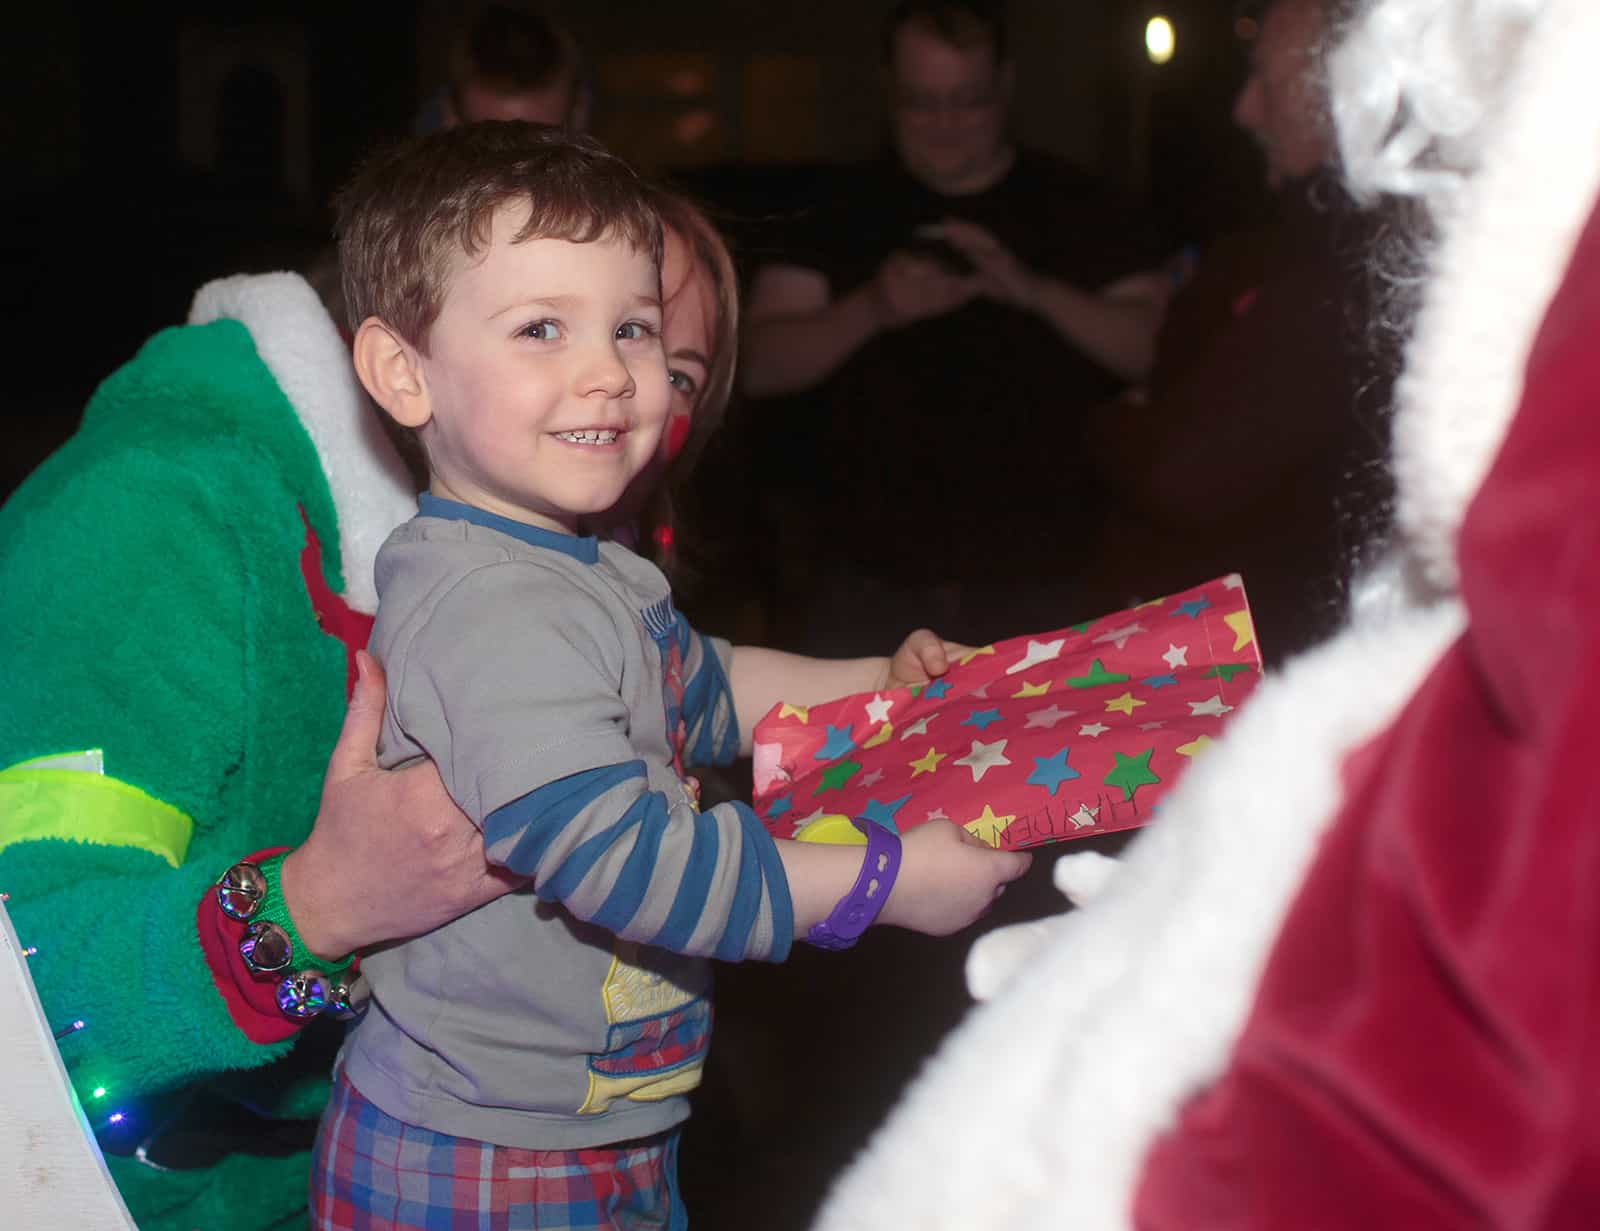 Boy receiving present